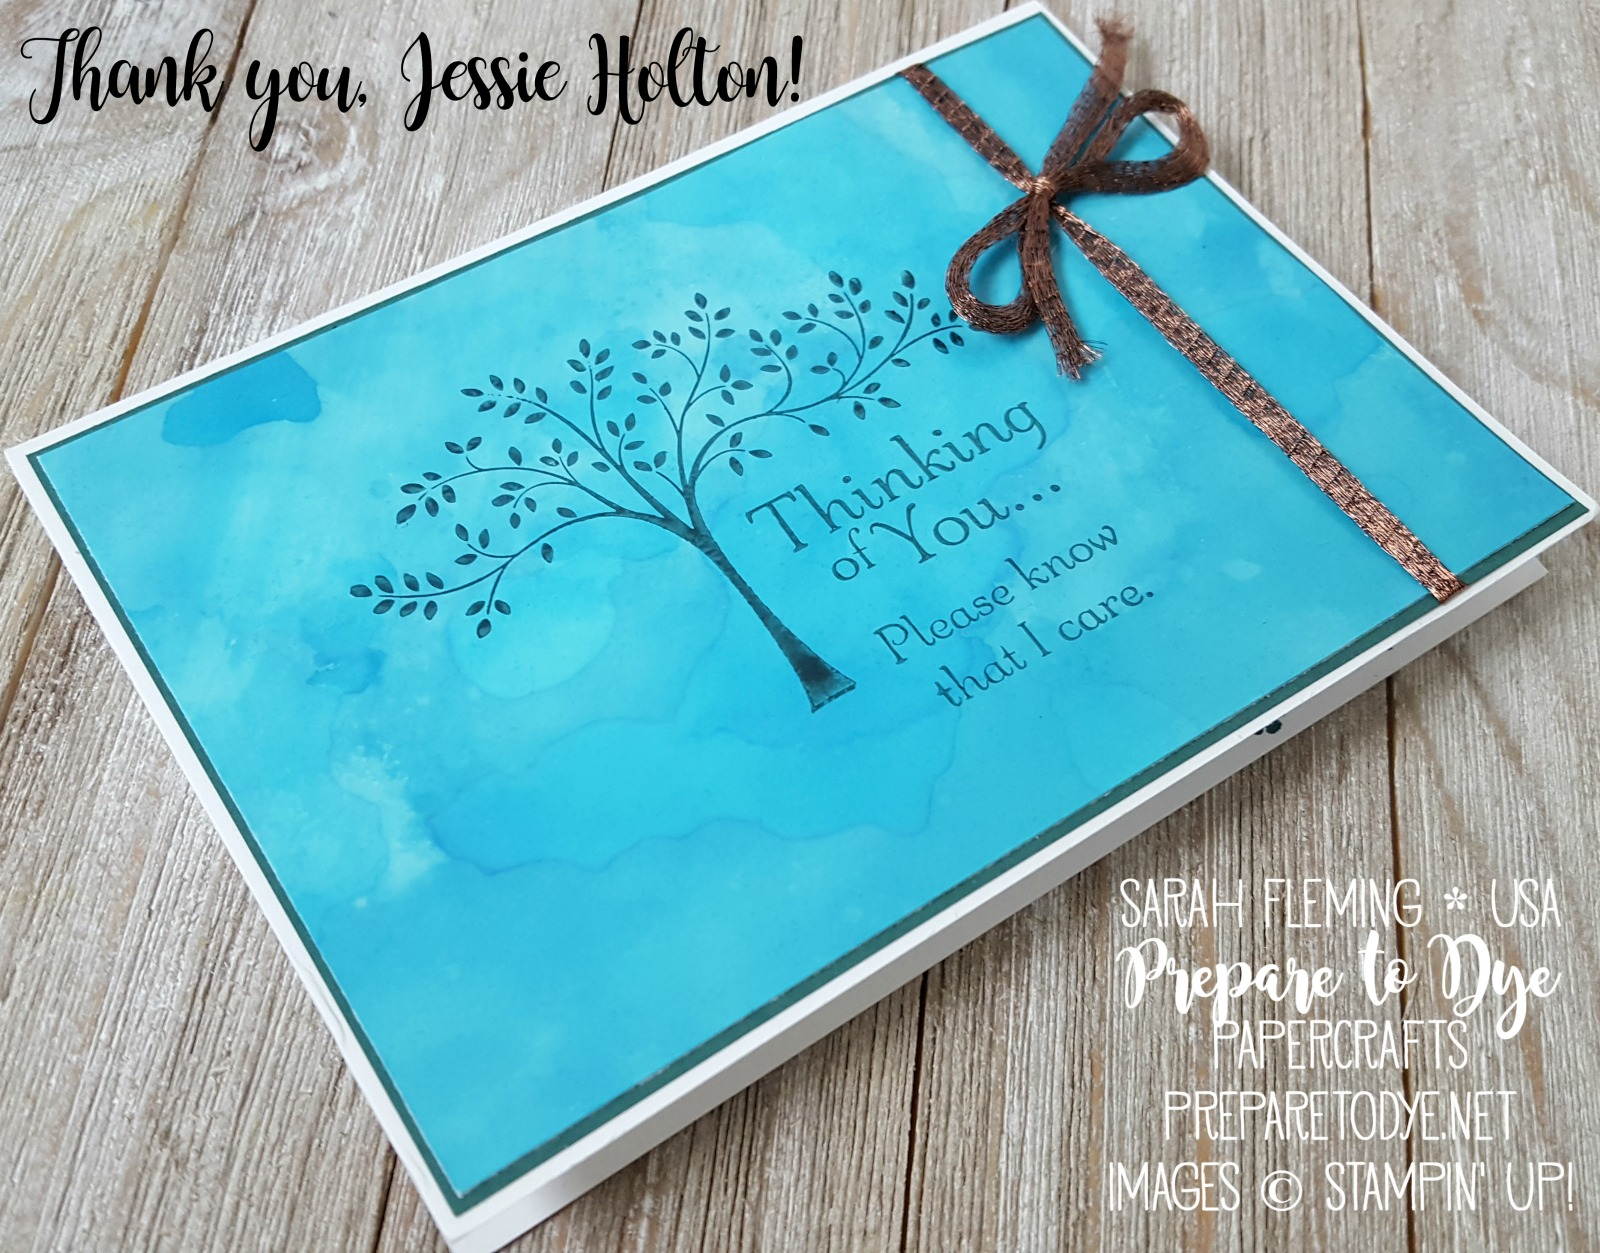 Random Act of Kindness card group blog hop - Thoughts & Prayers